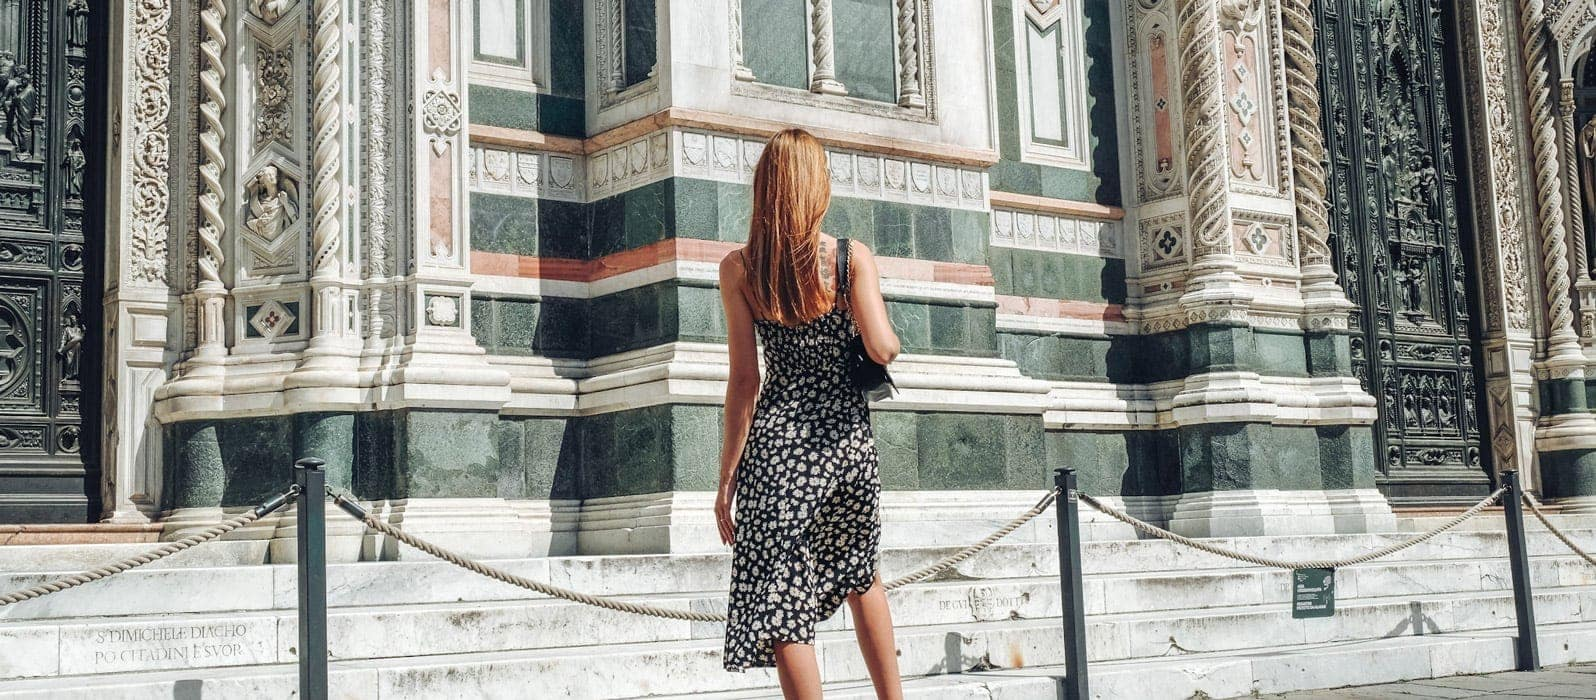 Travelling experience from atravelgirl